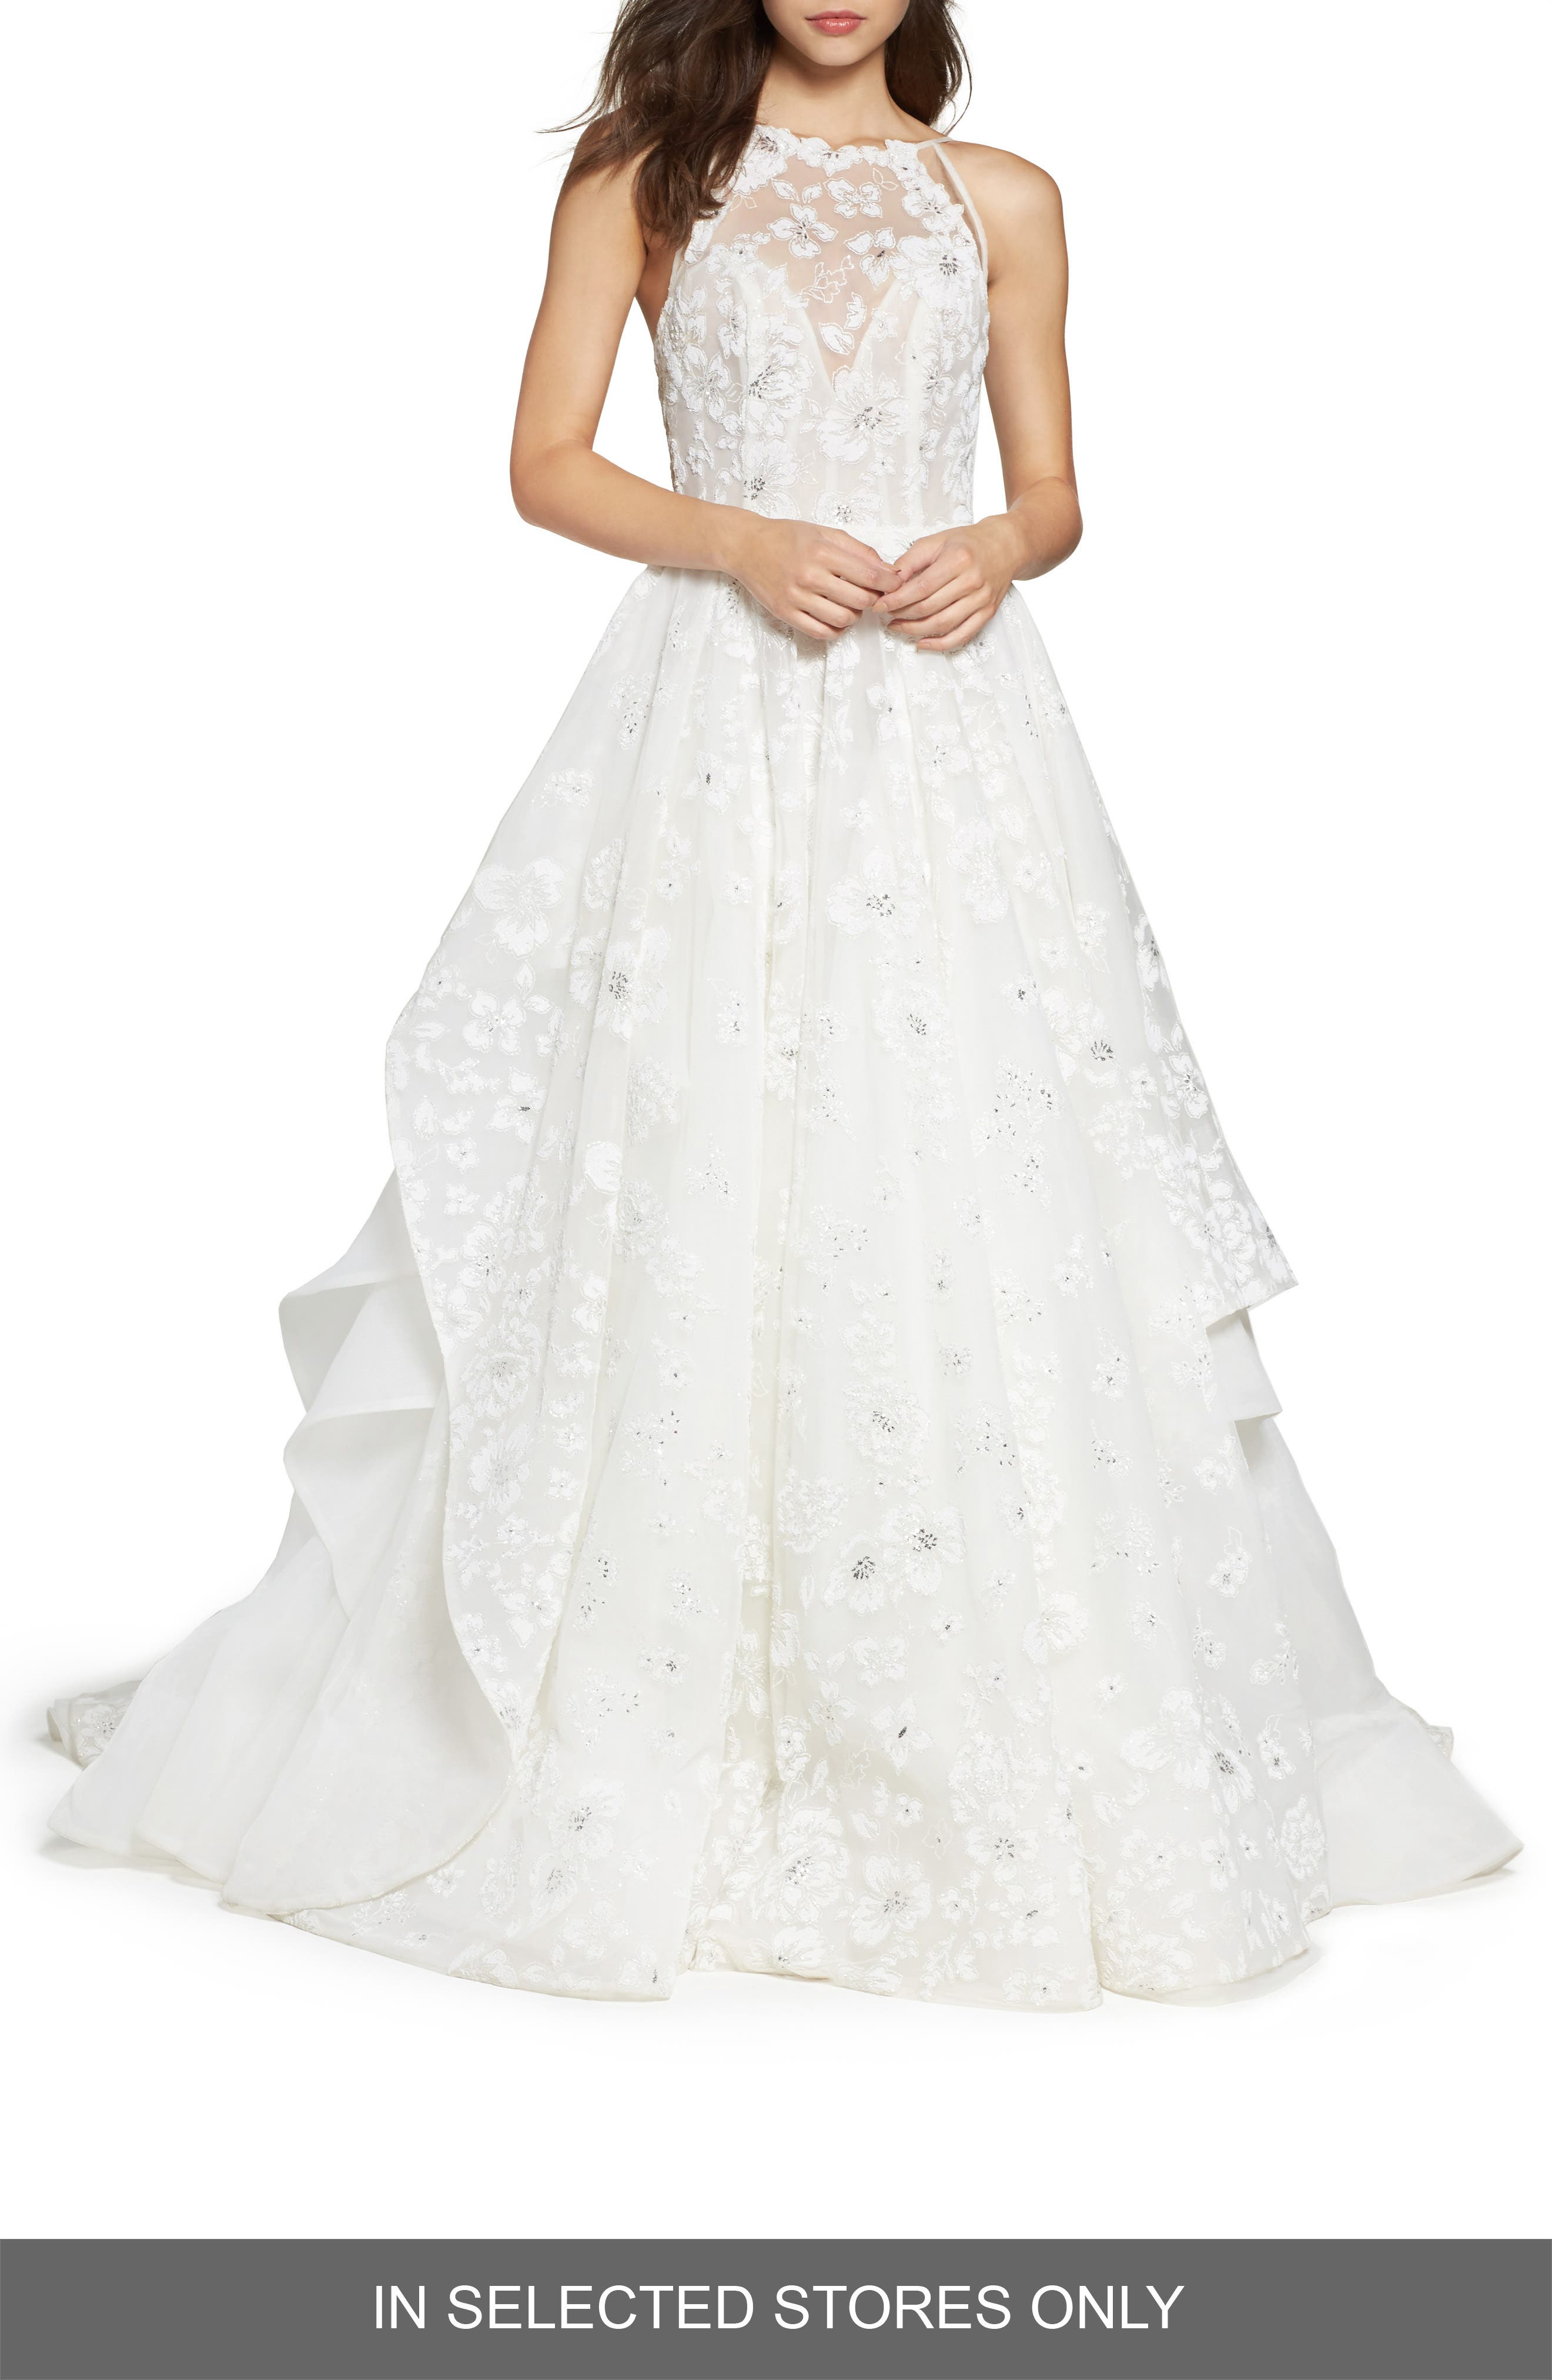 Alternate Image 1 Selected - Hayley Paige Reagan Floral Embroidered Layered Ballgown